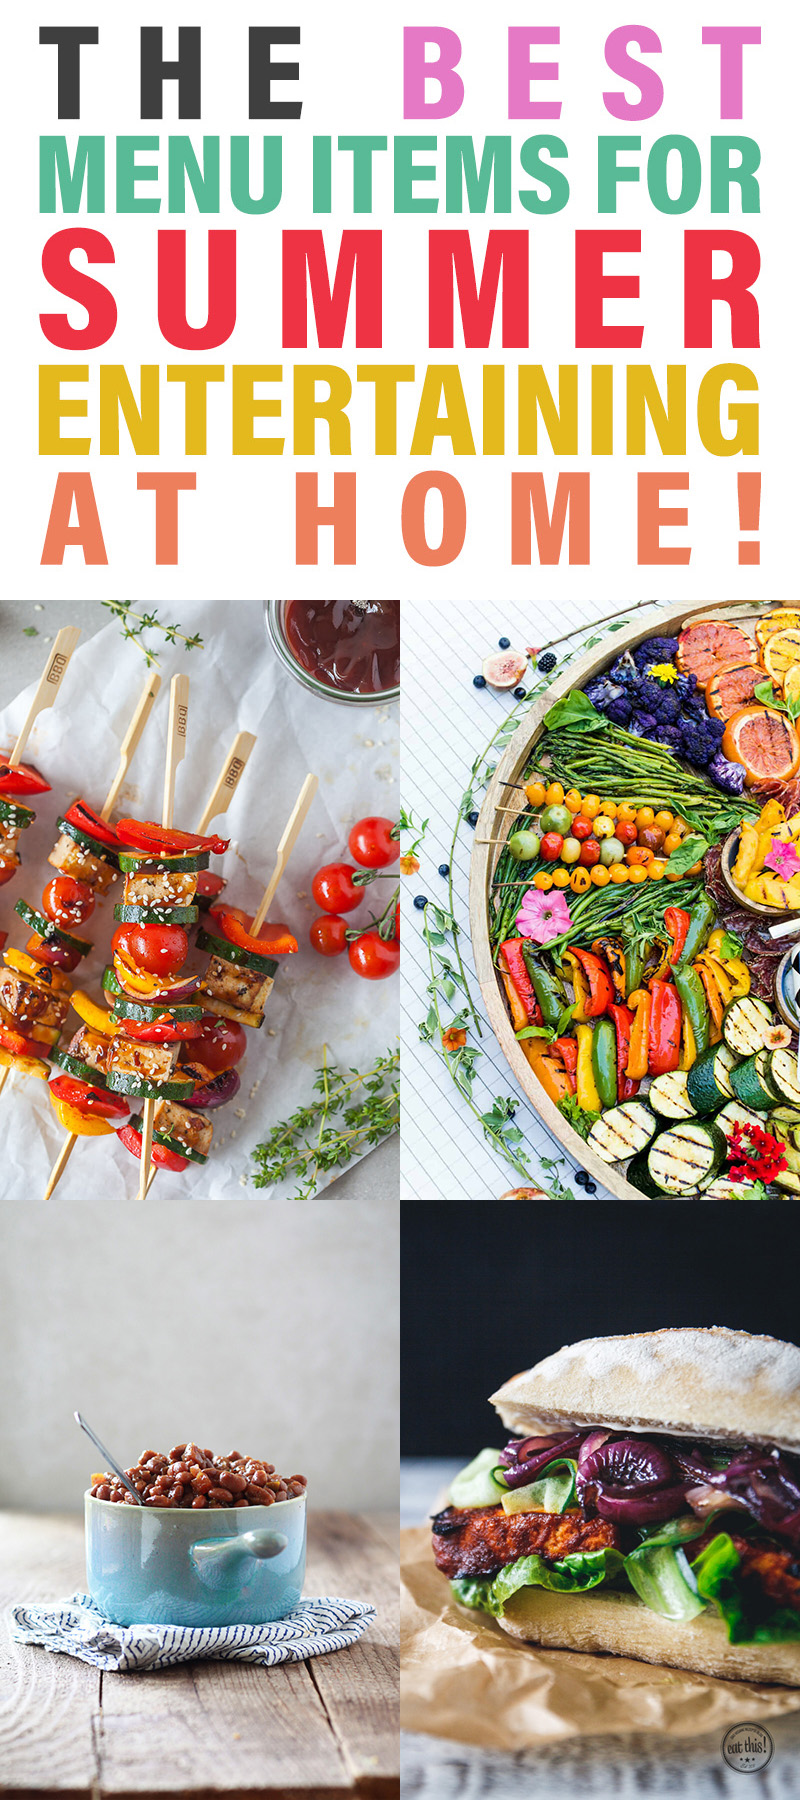 The Best Menu Items for Summer Entertaining At Home!